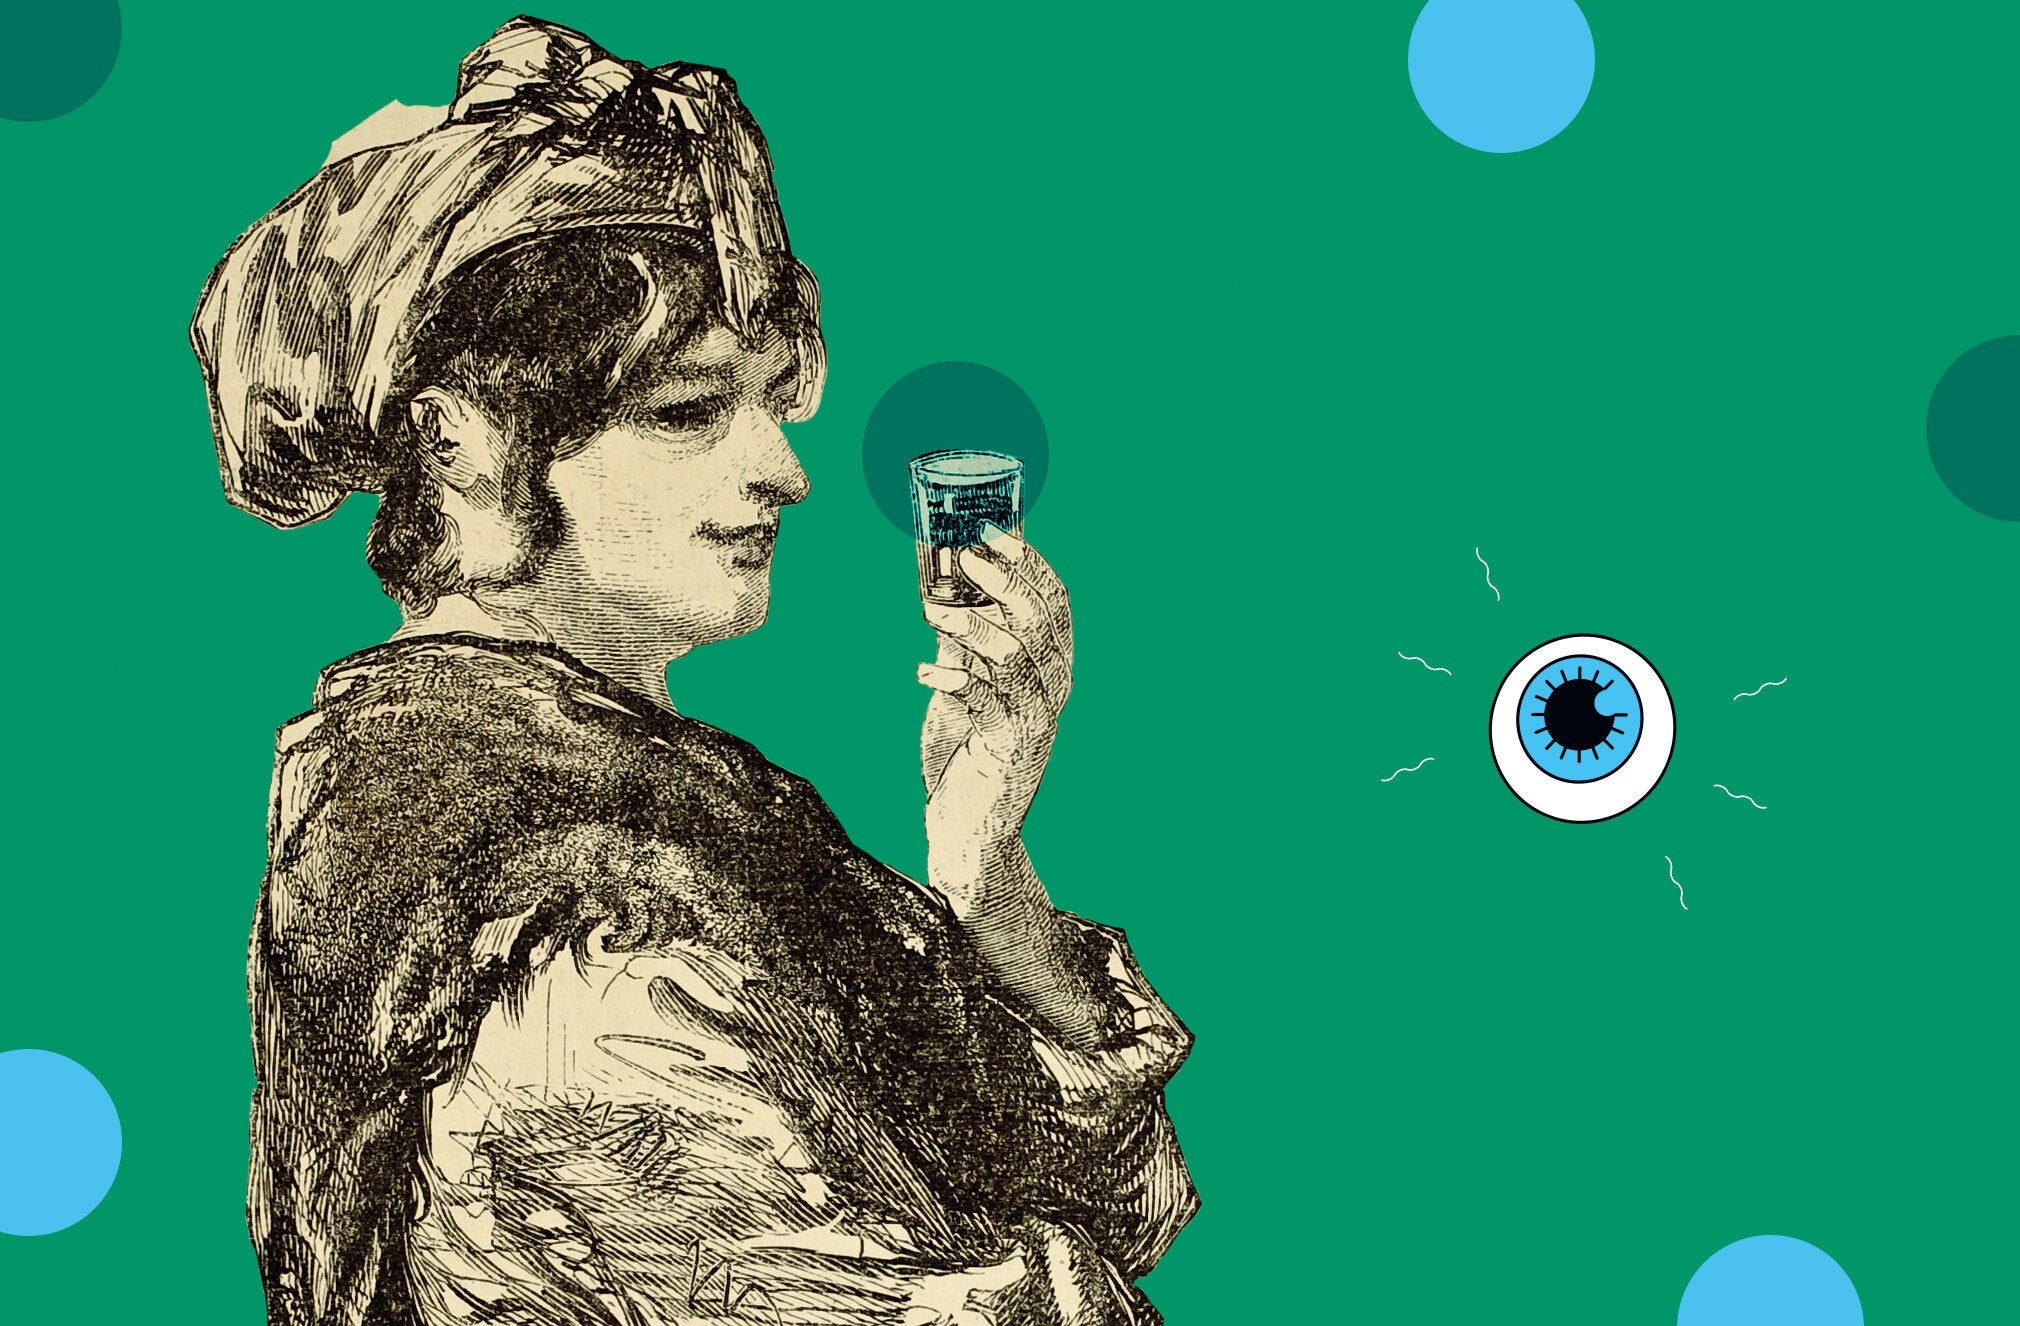 an old fashioned sketch of someone drinking out of a small glass on a green background with blue polka dots and a drawing of an eyeball